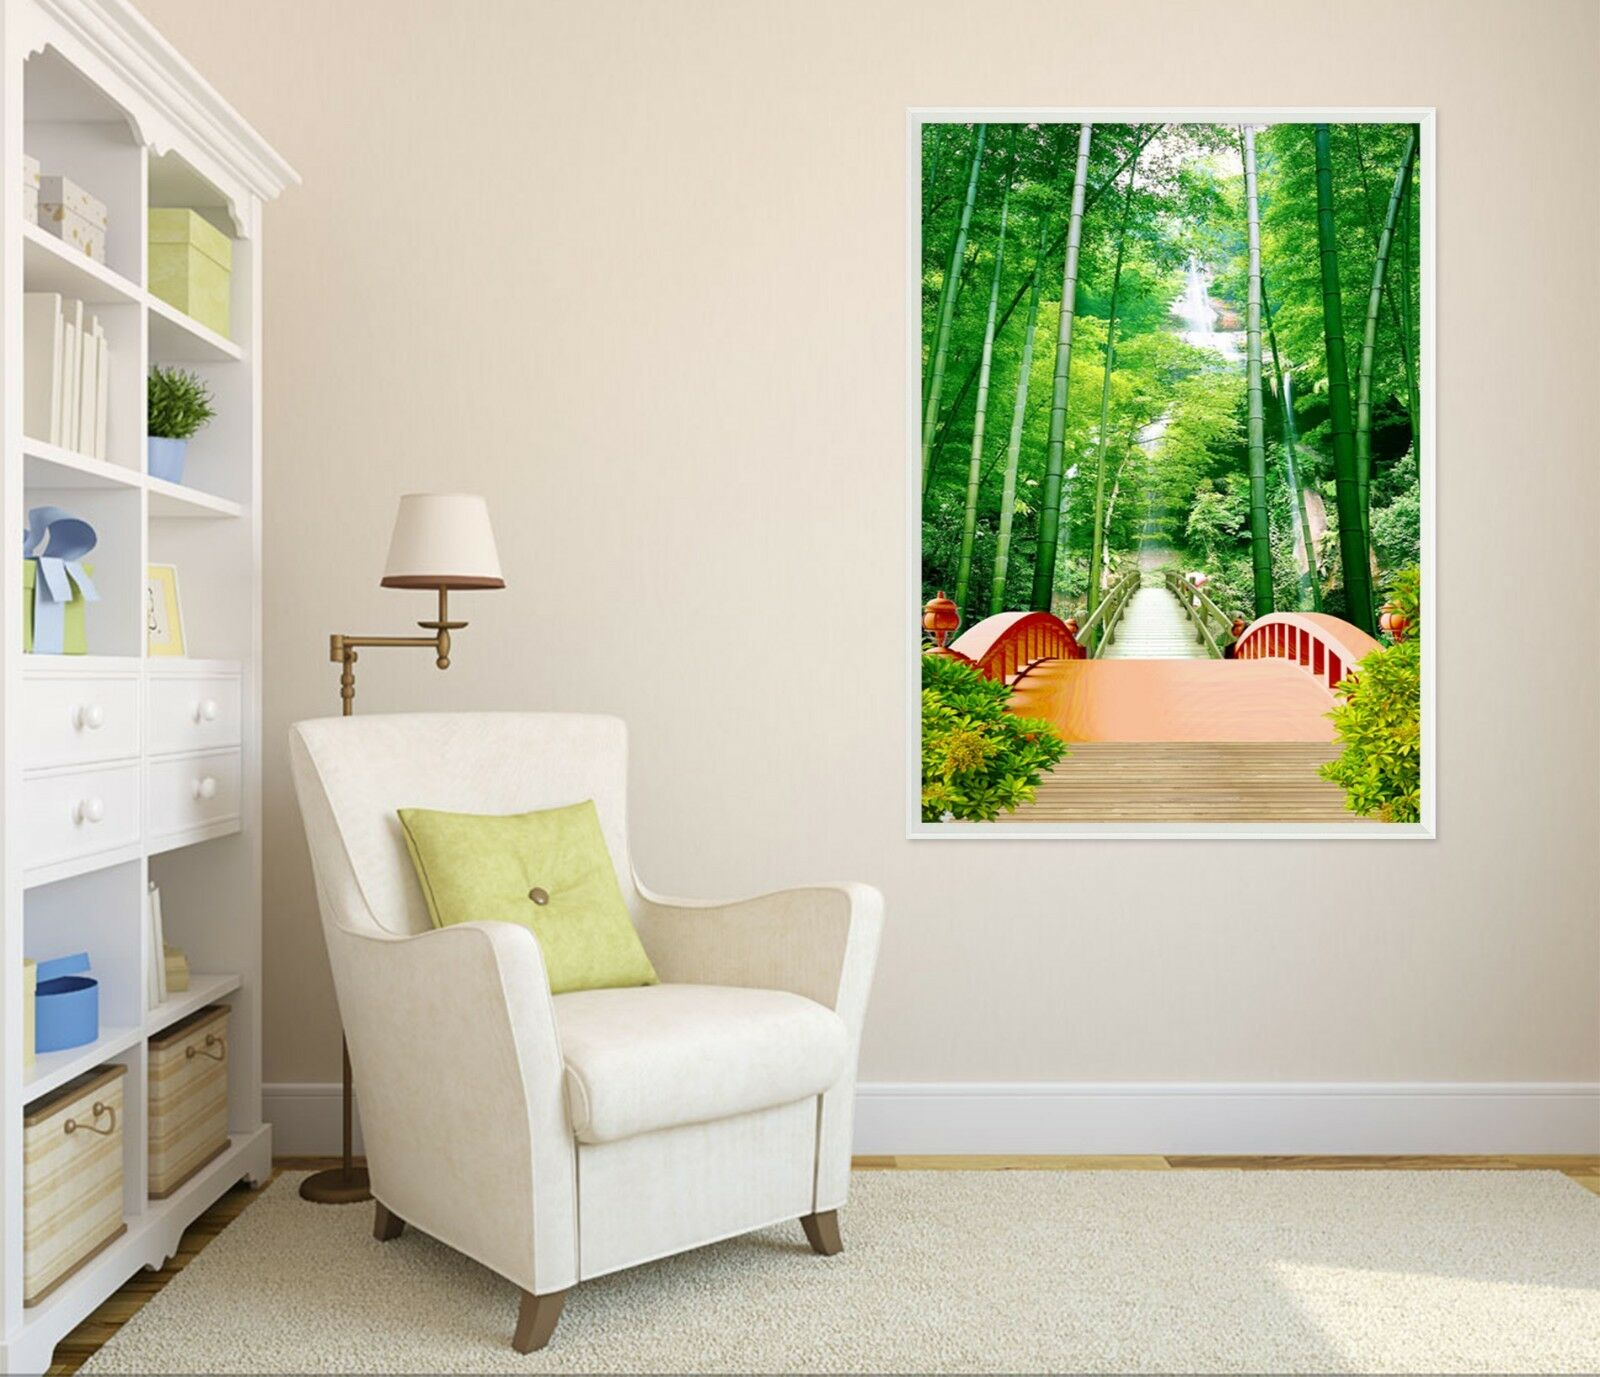 3D Bamboo Forest 6 Framed Poster Home Decor Print Painting Art AJ AU